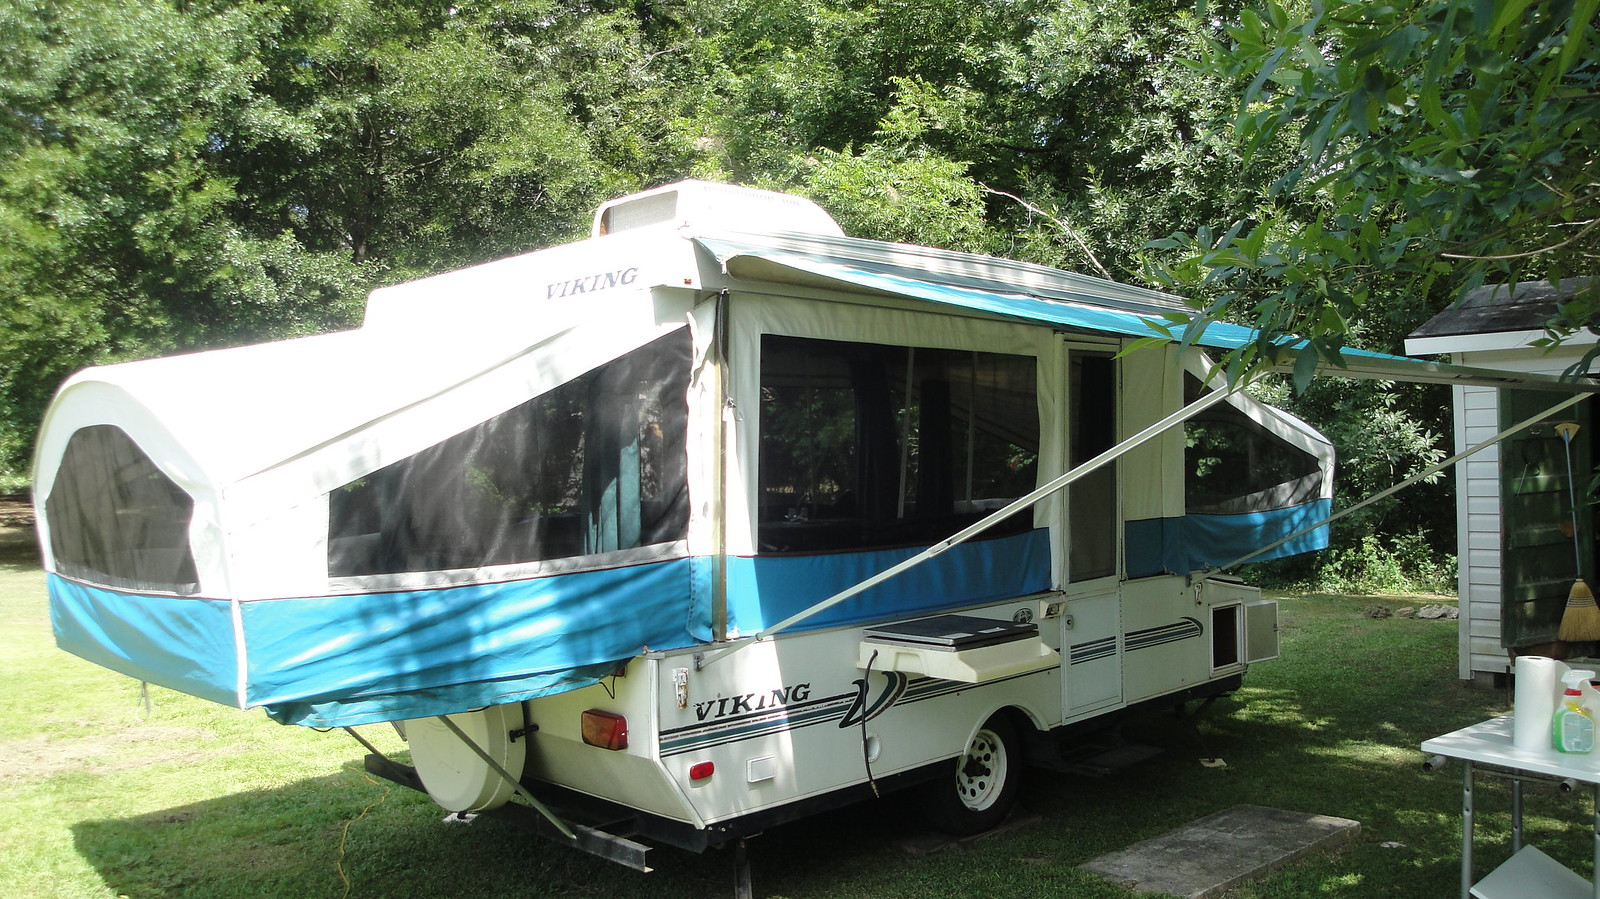 1998 Viking 2460 St Popup Camper Remodel Project Popupportal